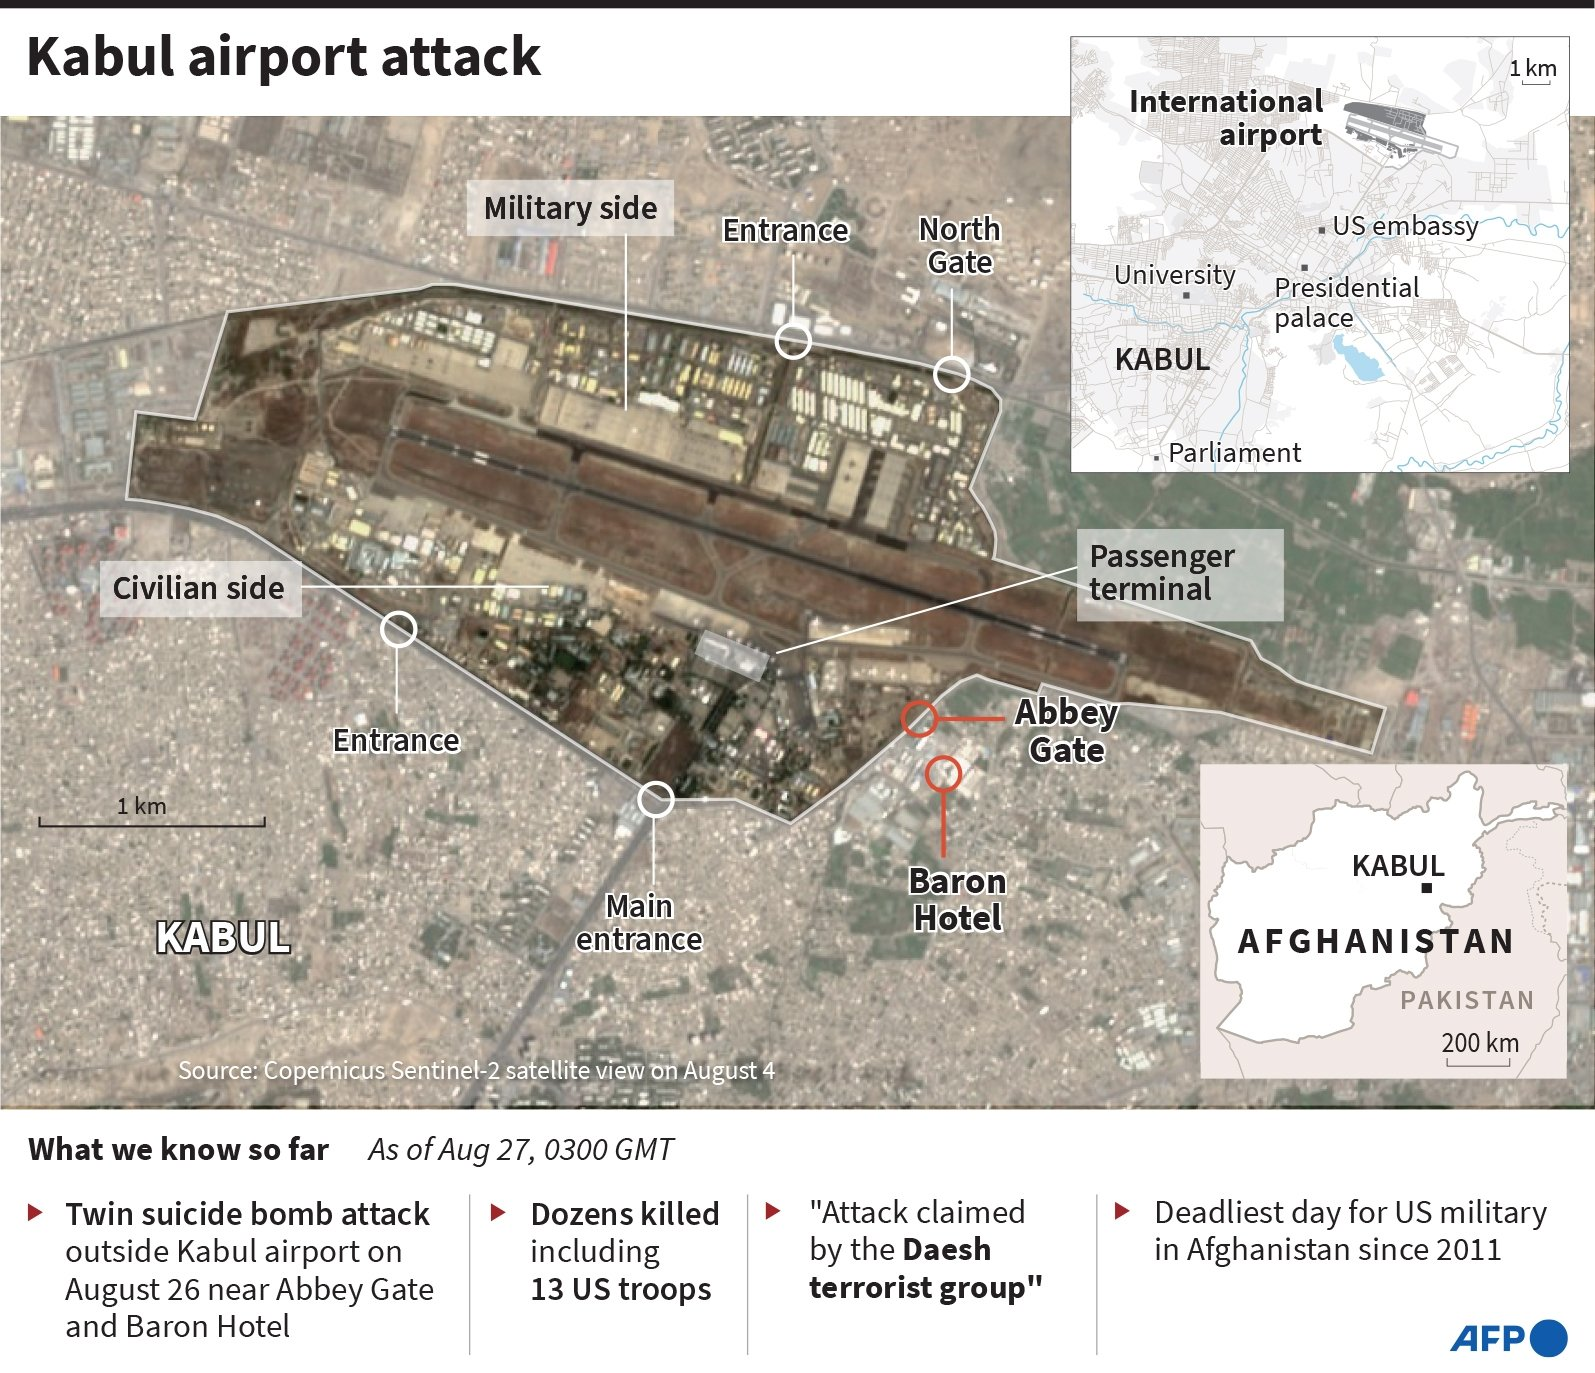 Infographic by AFP